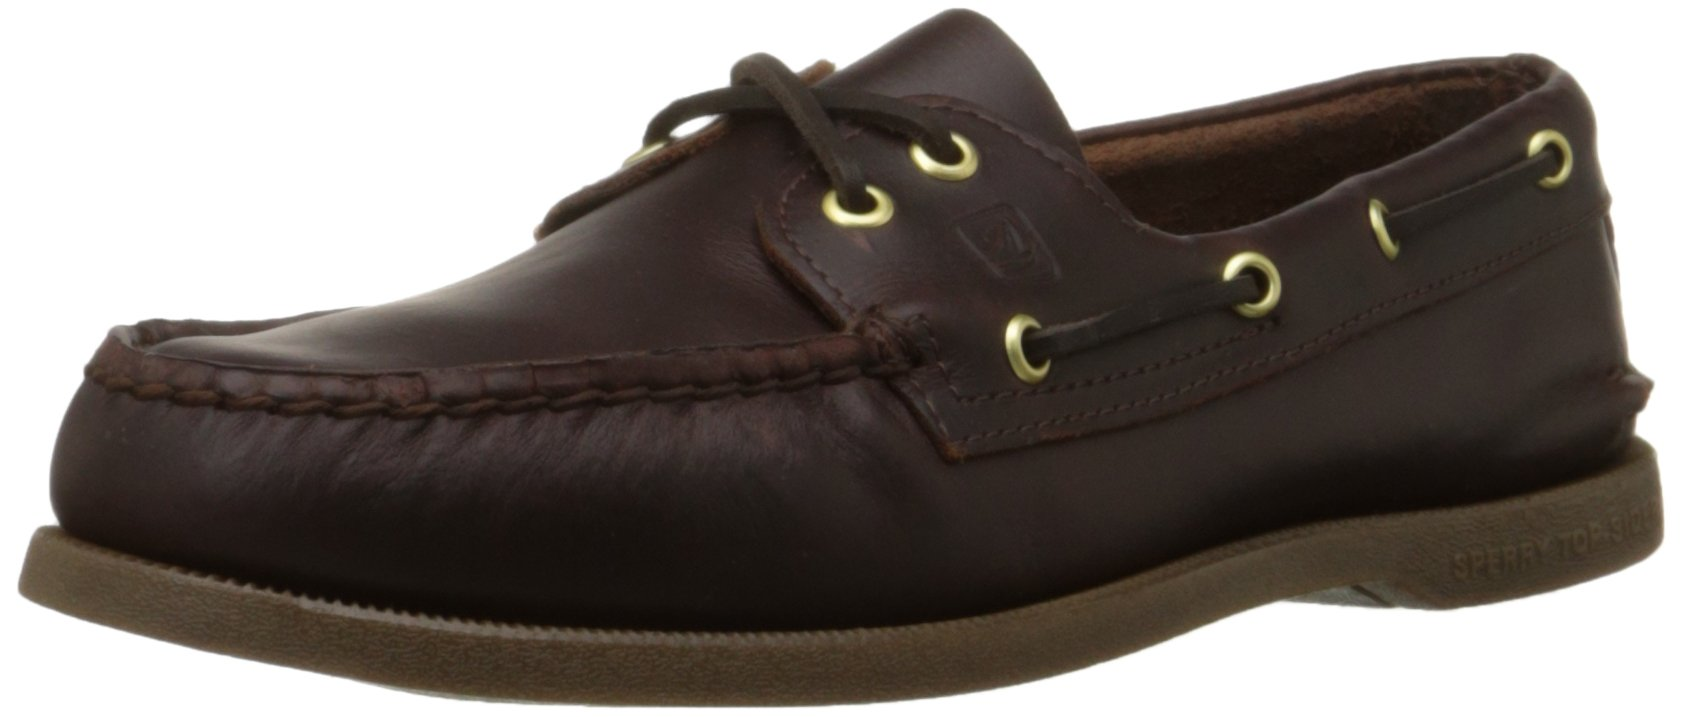 Sperry Top-Sider: Authentic Original Boat Shoe, Amaretto, Size: 10